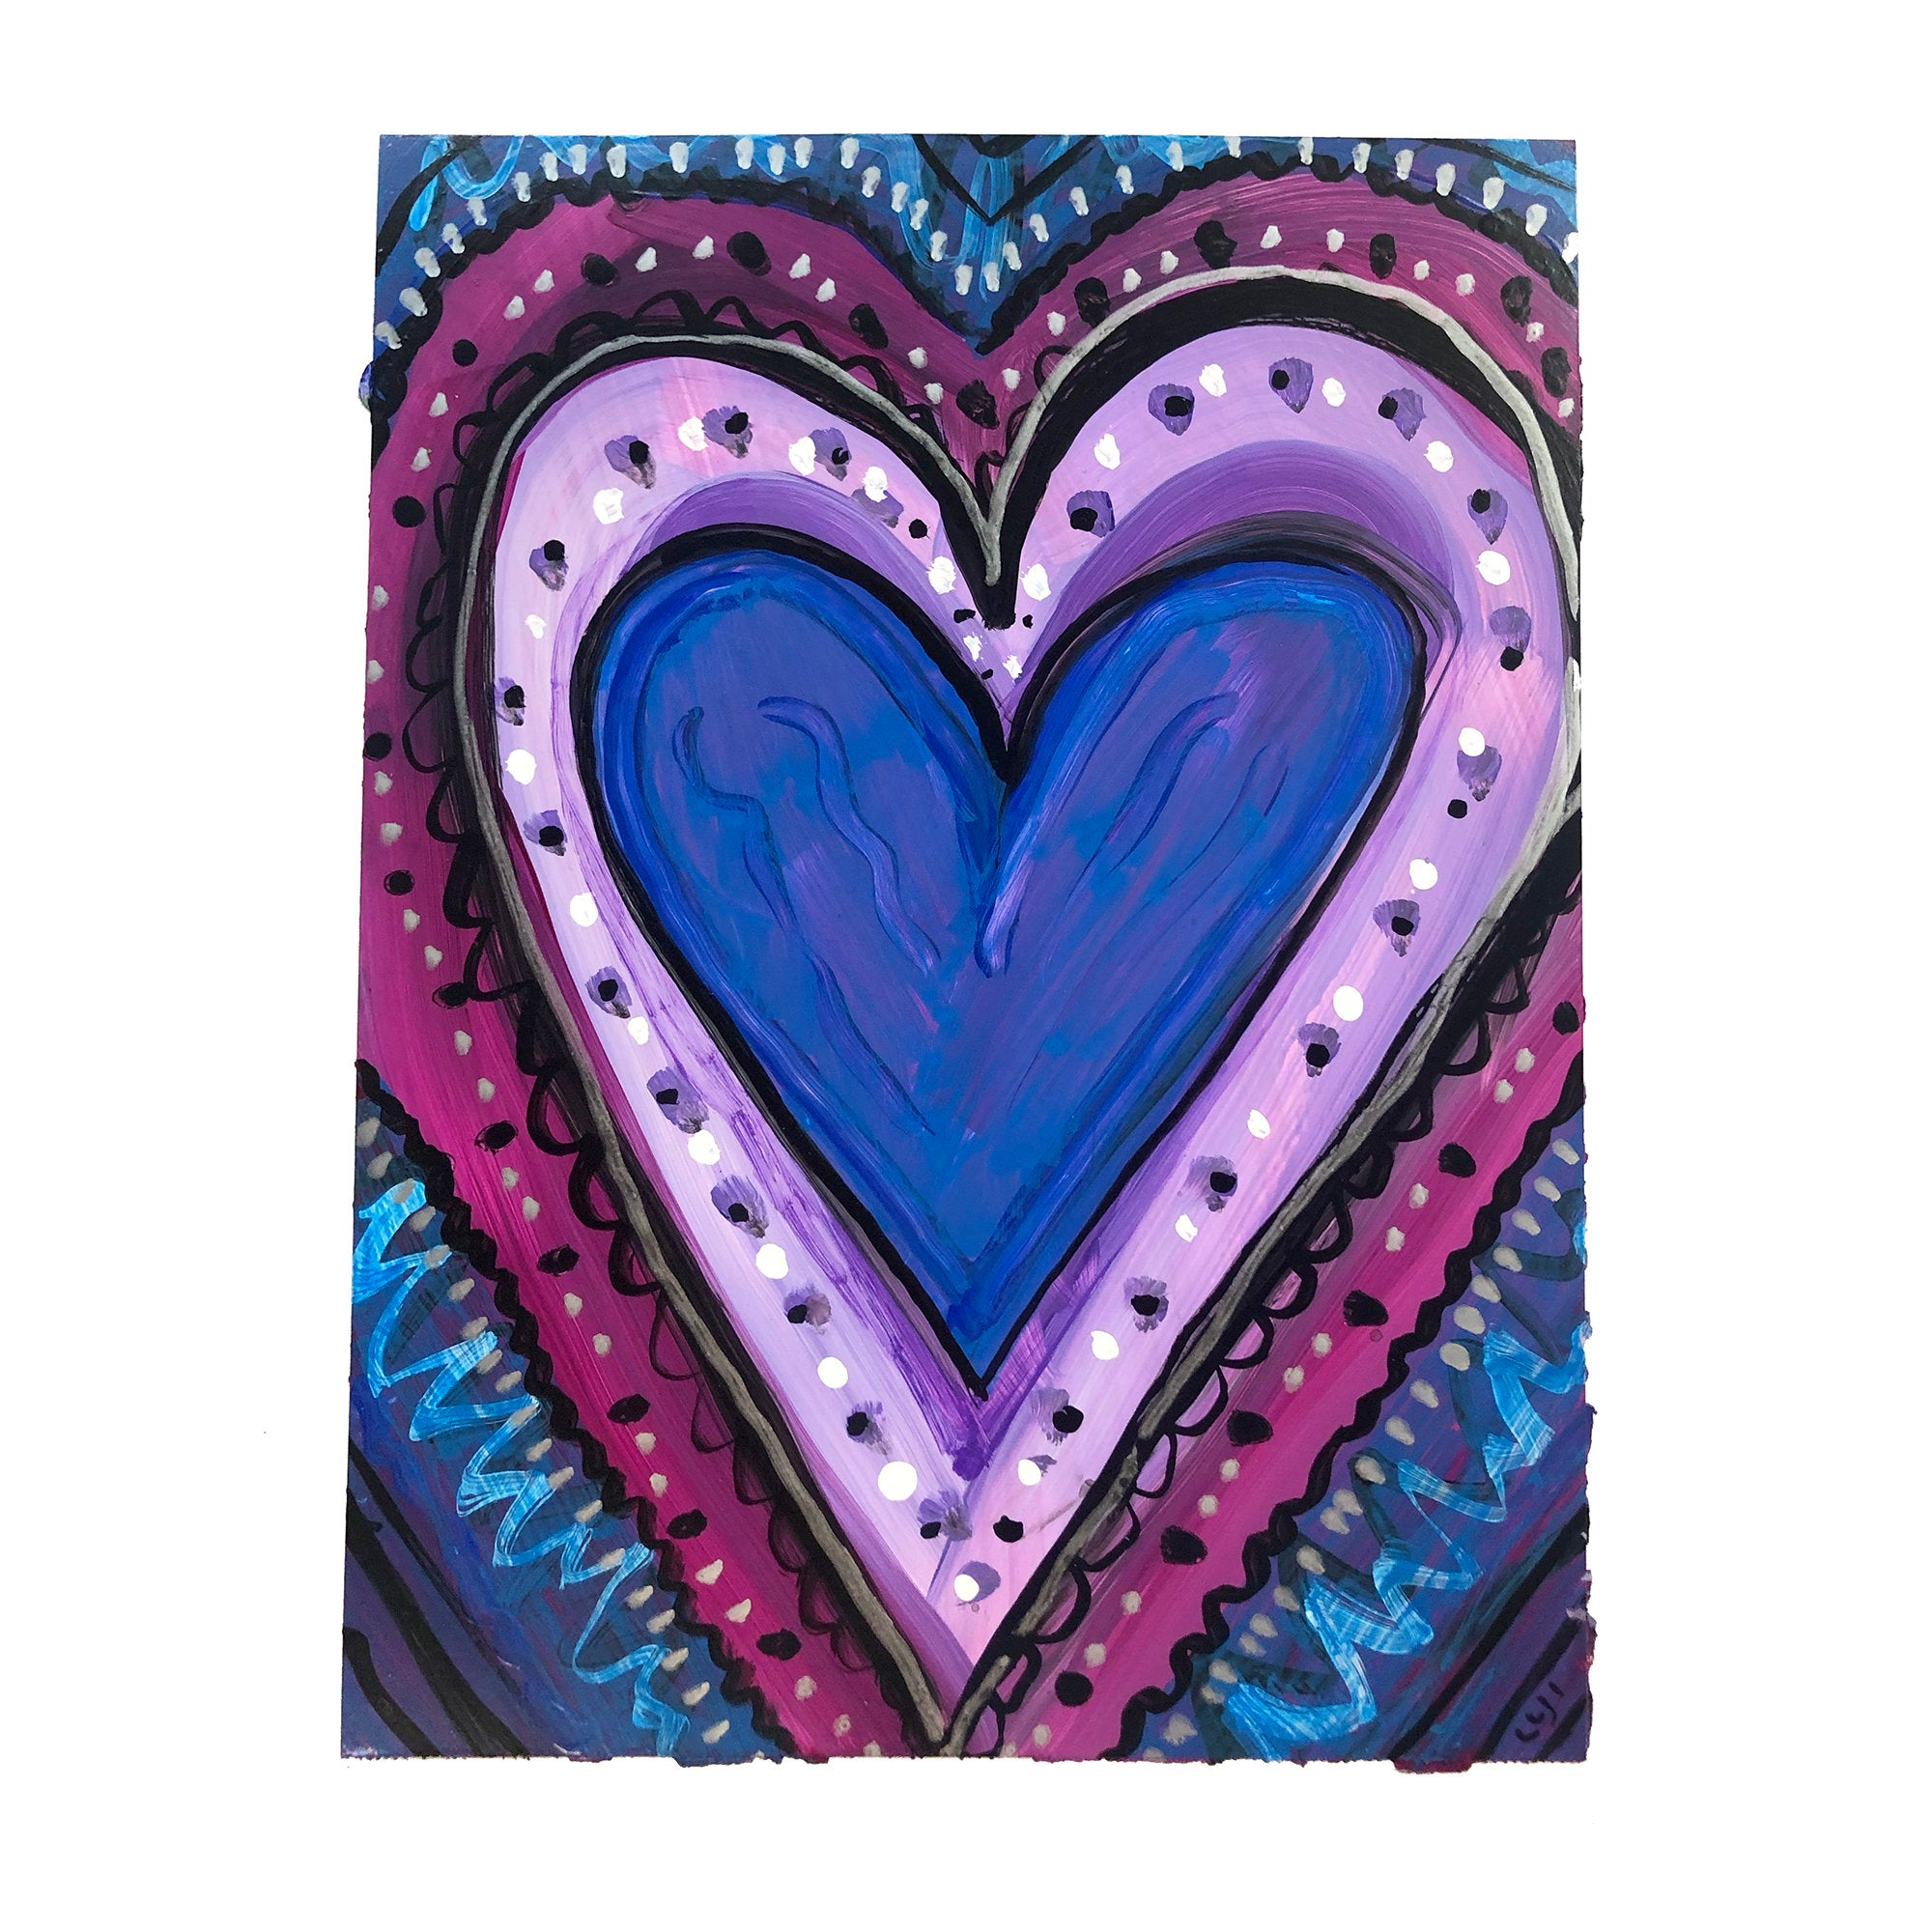 Whimsical Heart Painting on Paper - Original 9x12 Artwork on Yupo - Purple, Blue, and Magenta Art